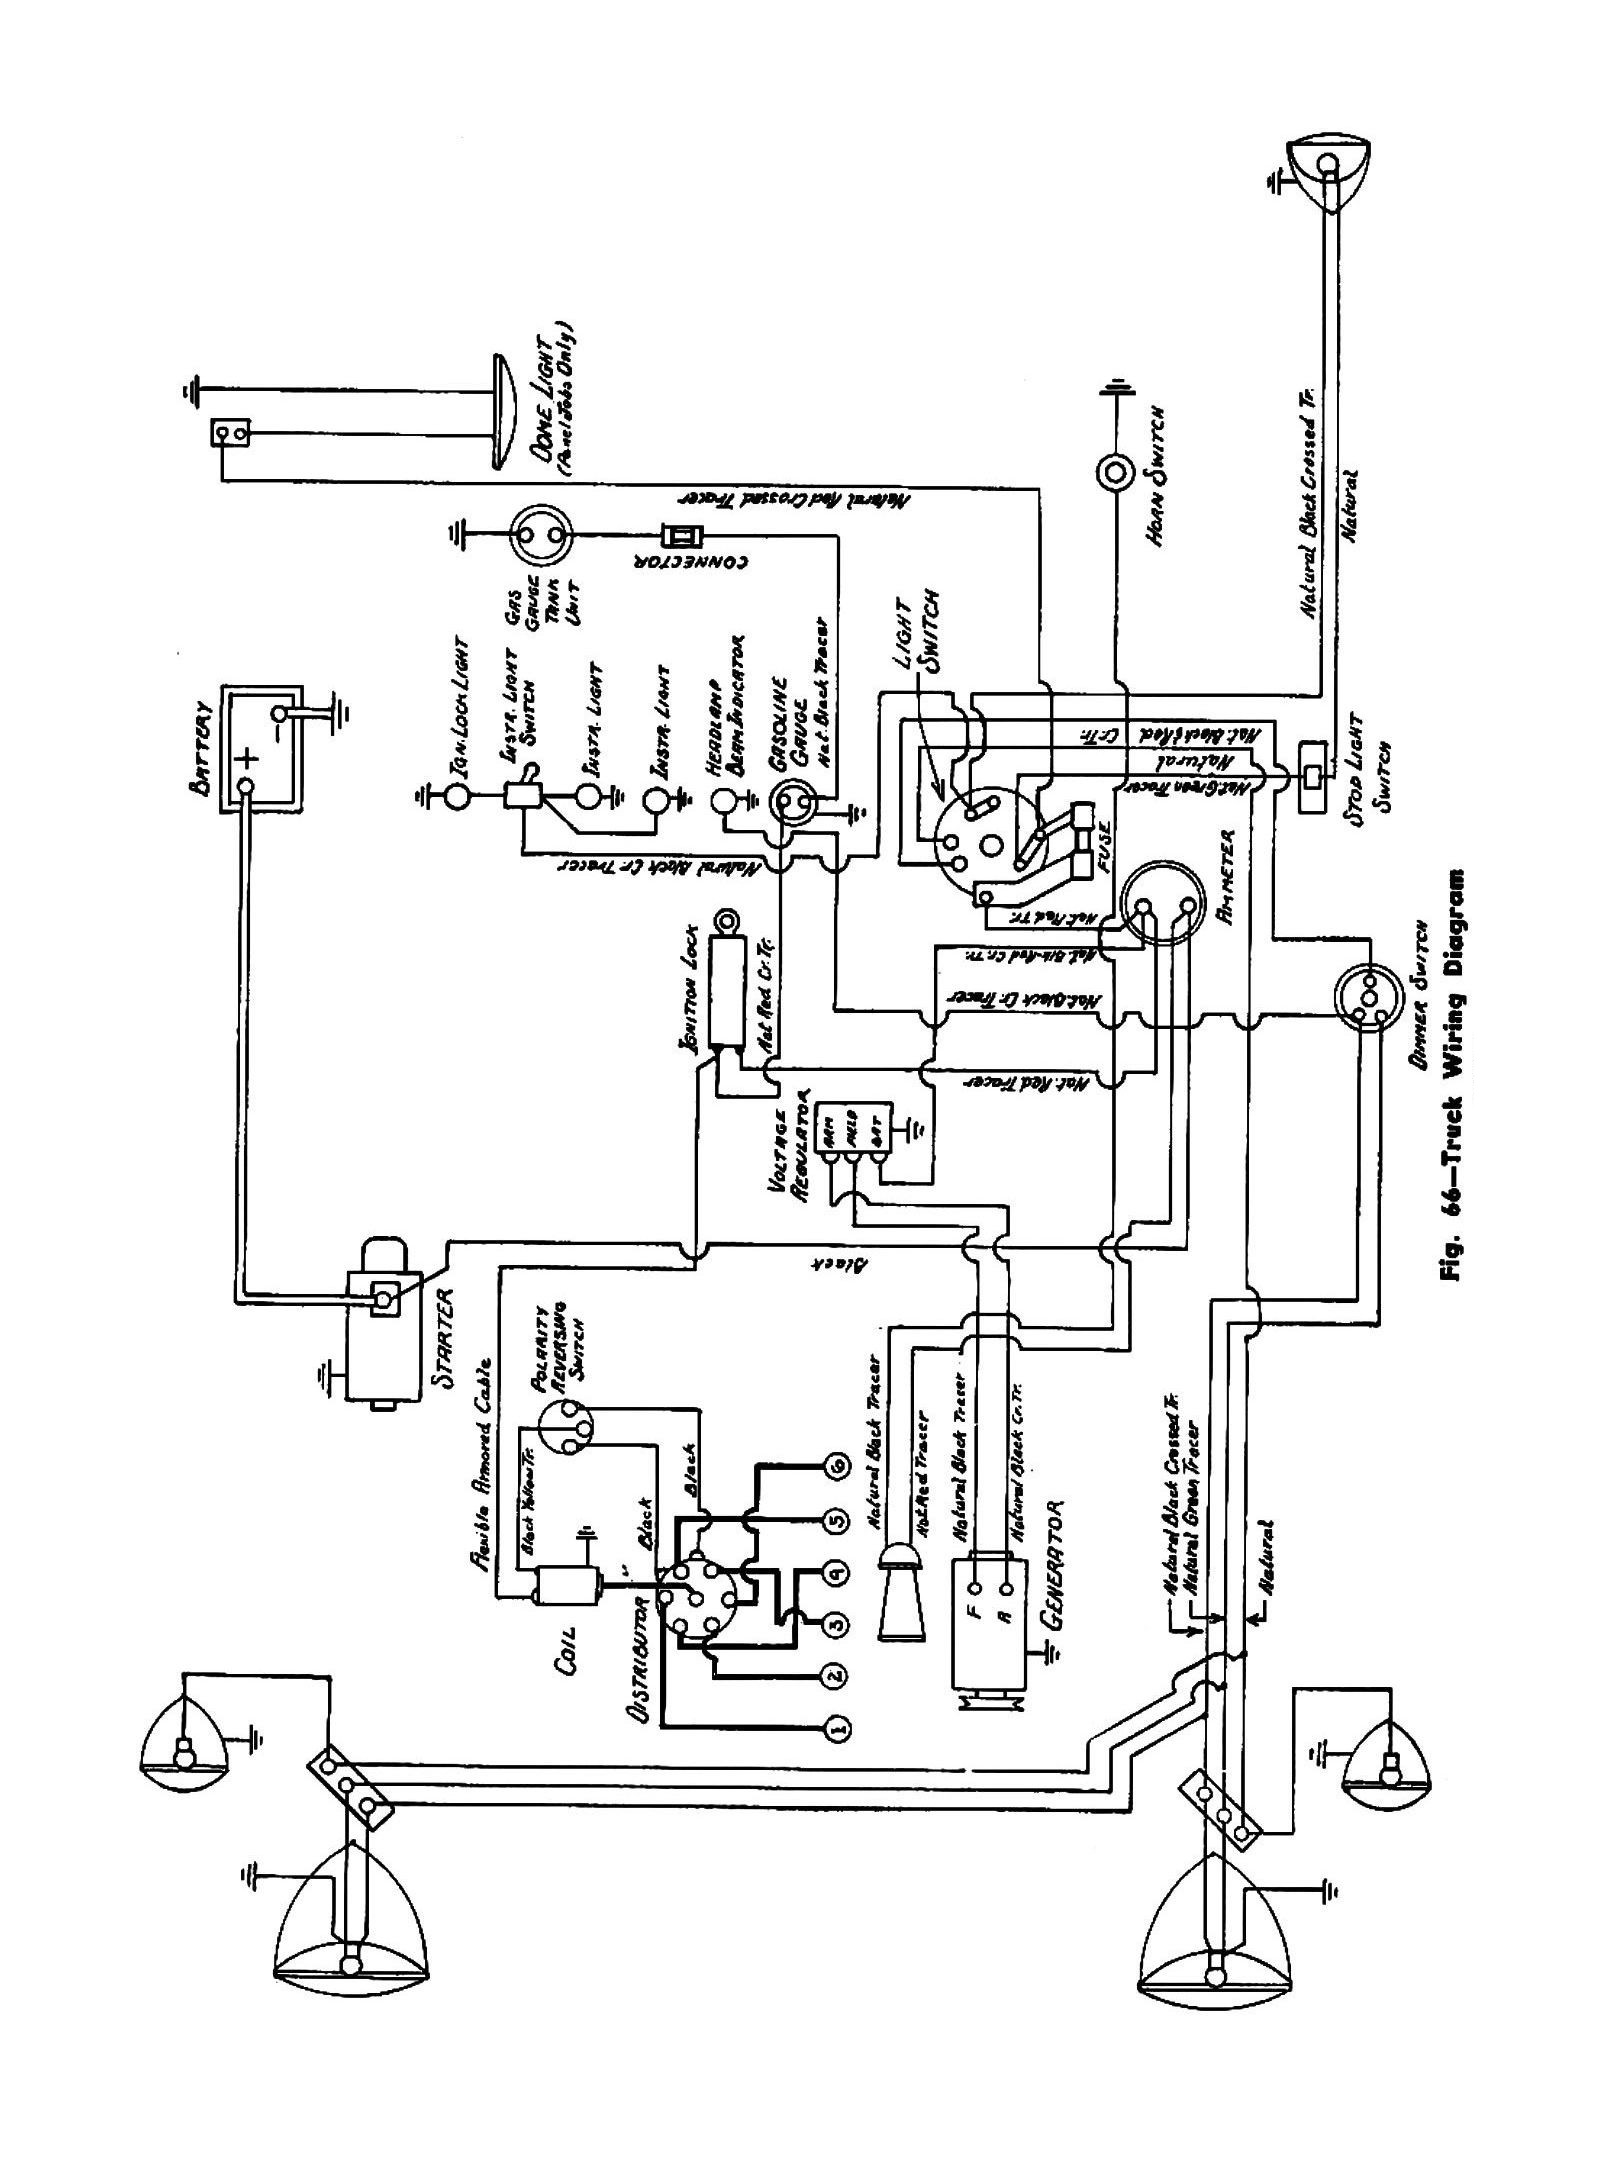 45truck chevy wiring diagrams international truck wiring diagram at aneh.co